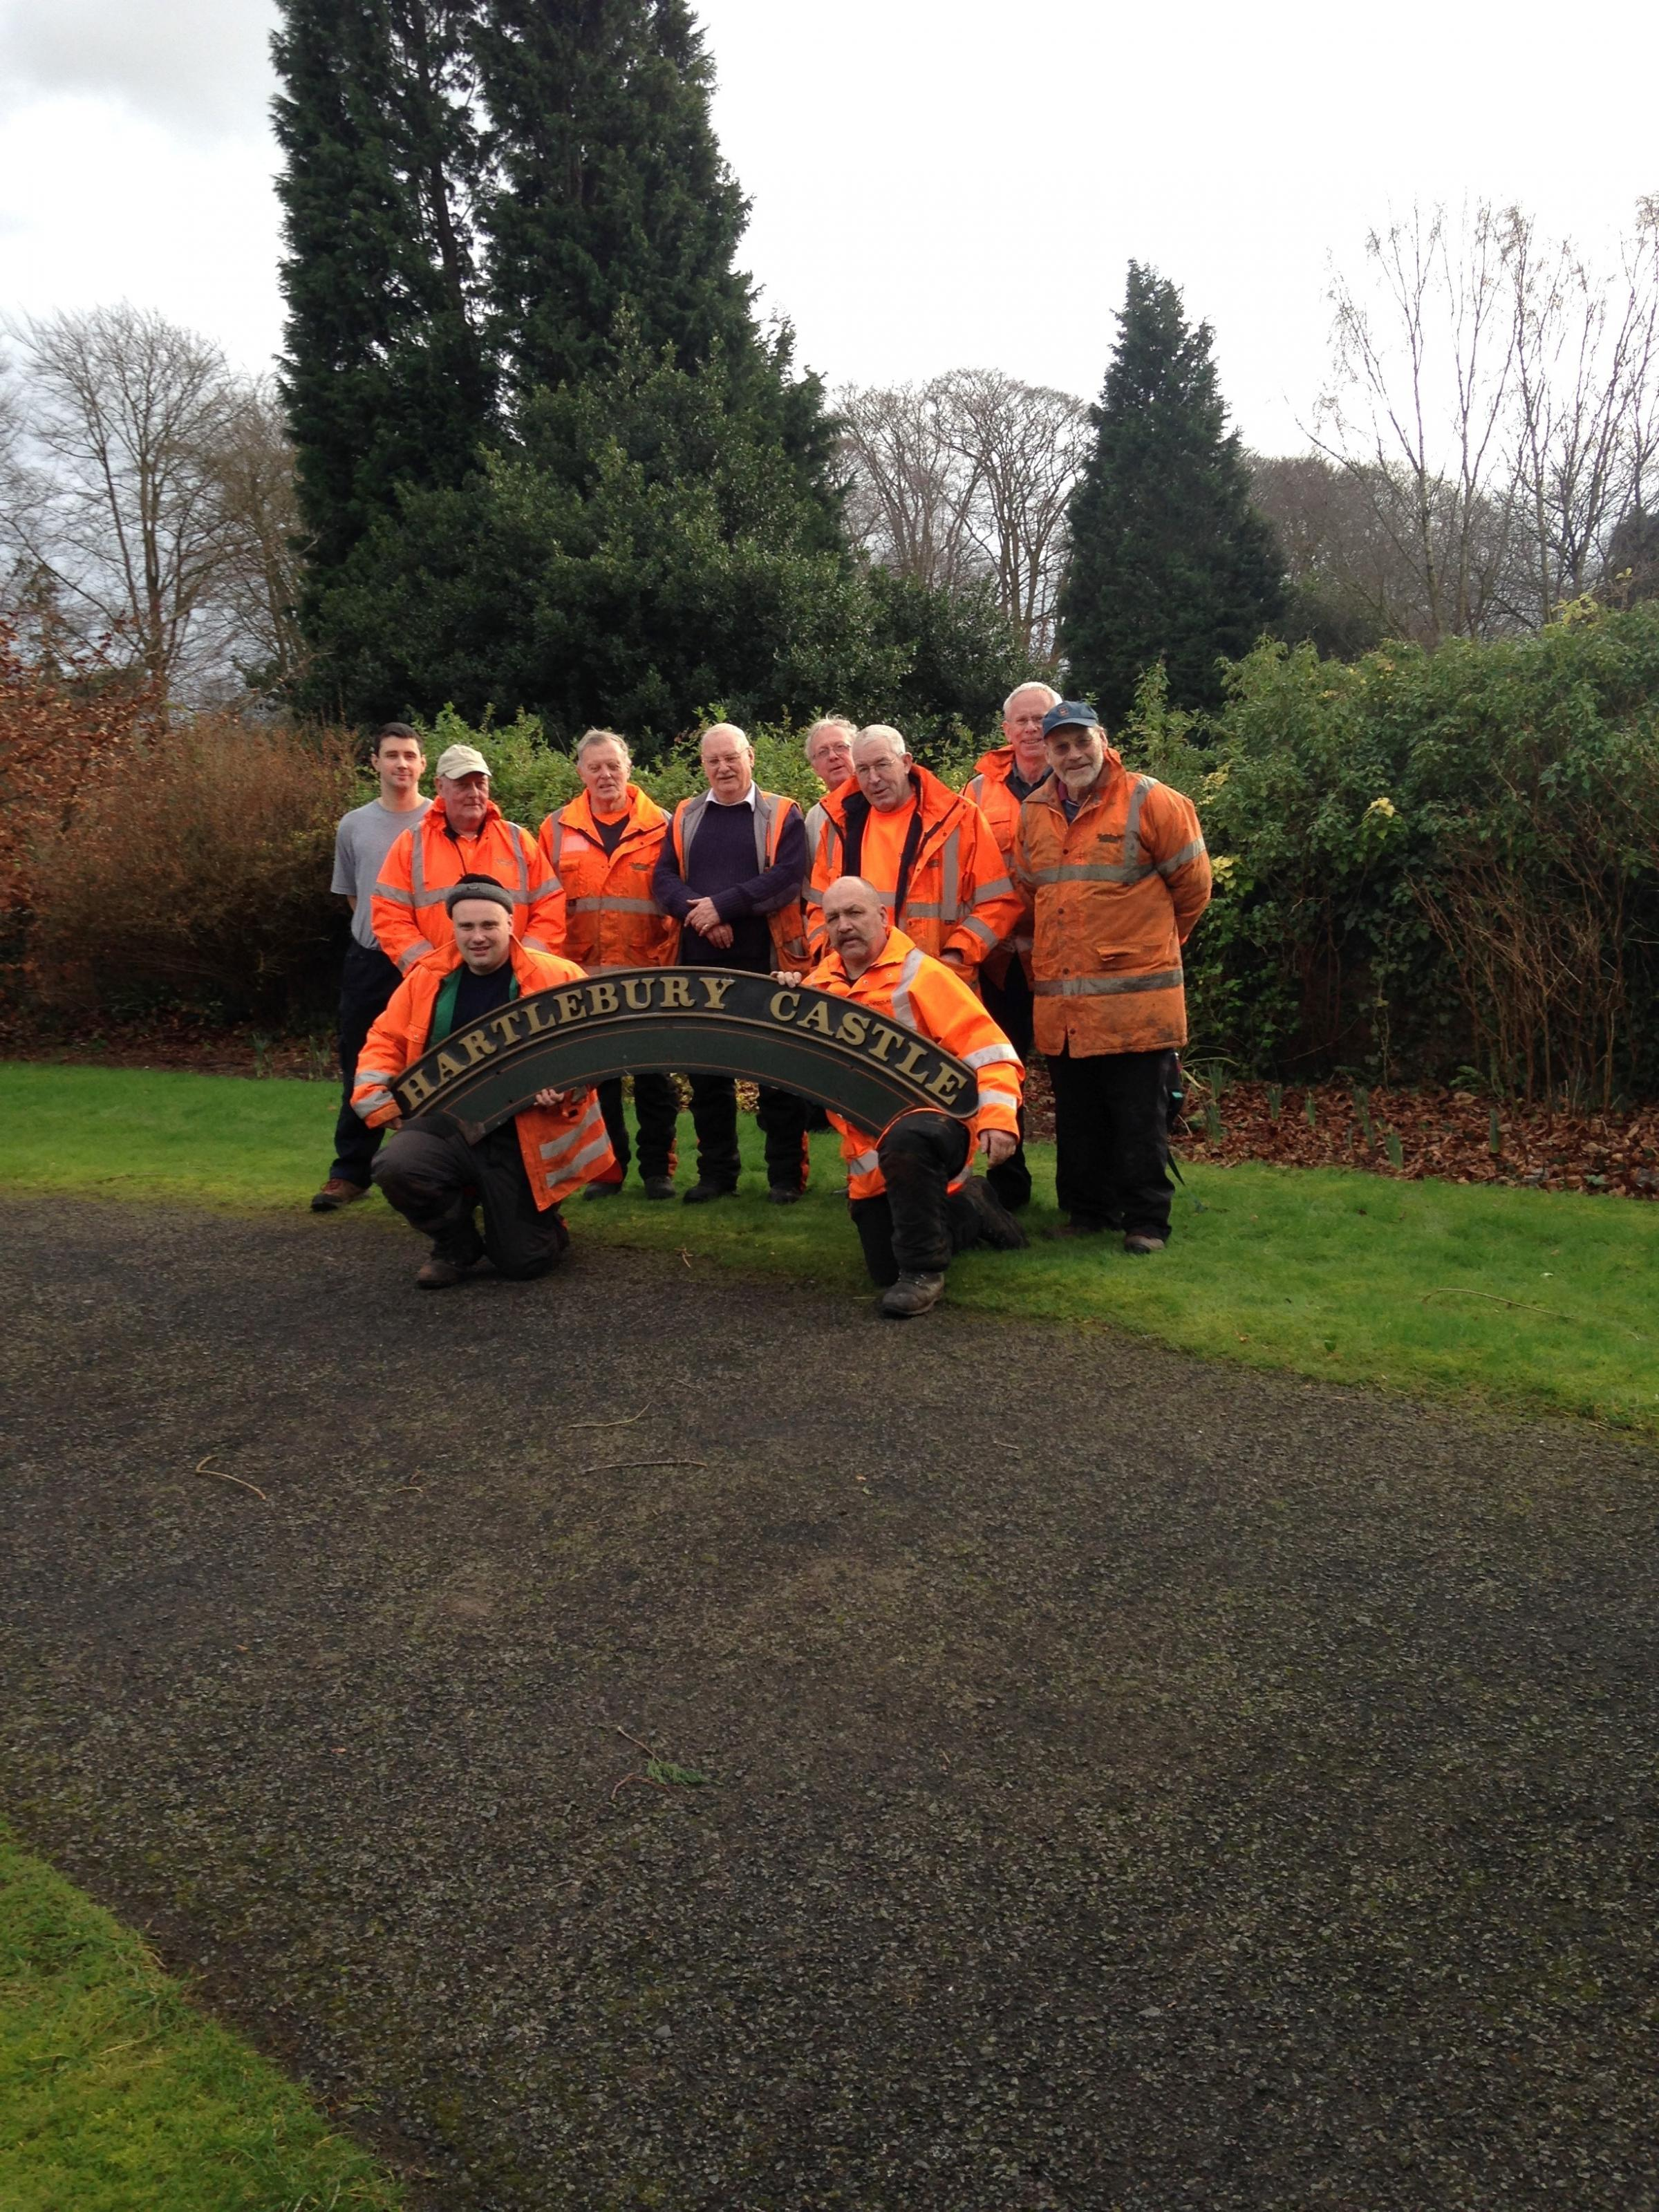 Severn Valley Railway volunteers pose with the Hartlebury Castle locomotive's name plate after spending the day clearing the grounds of the historic building